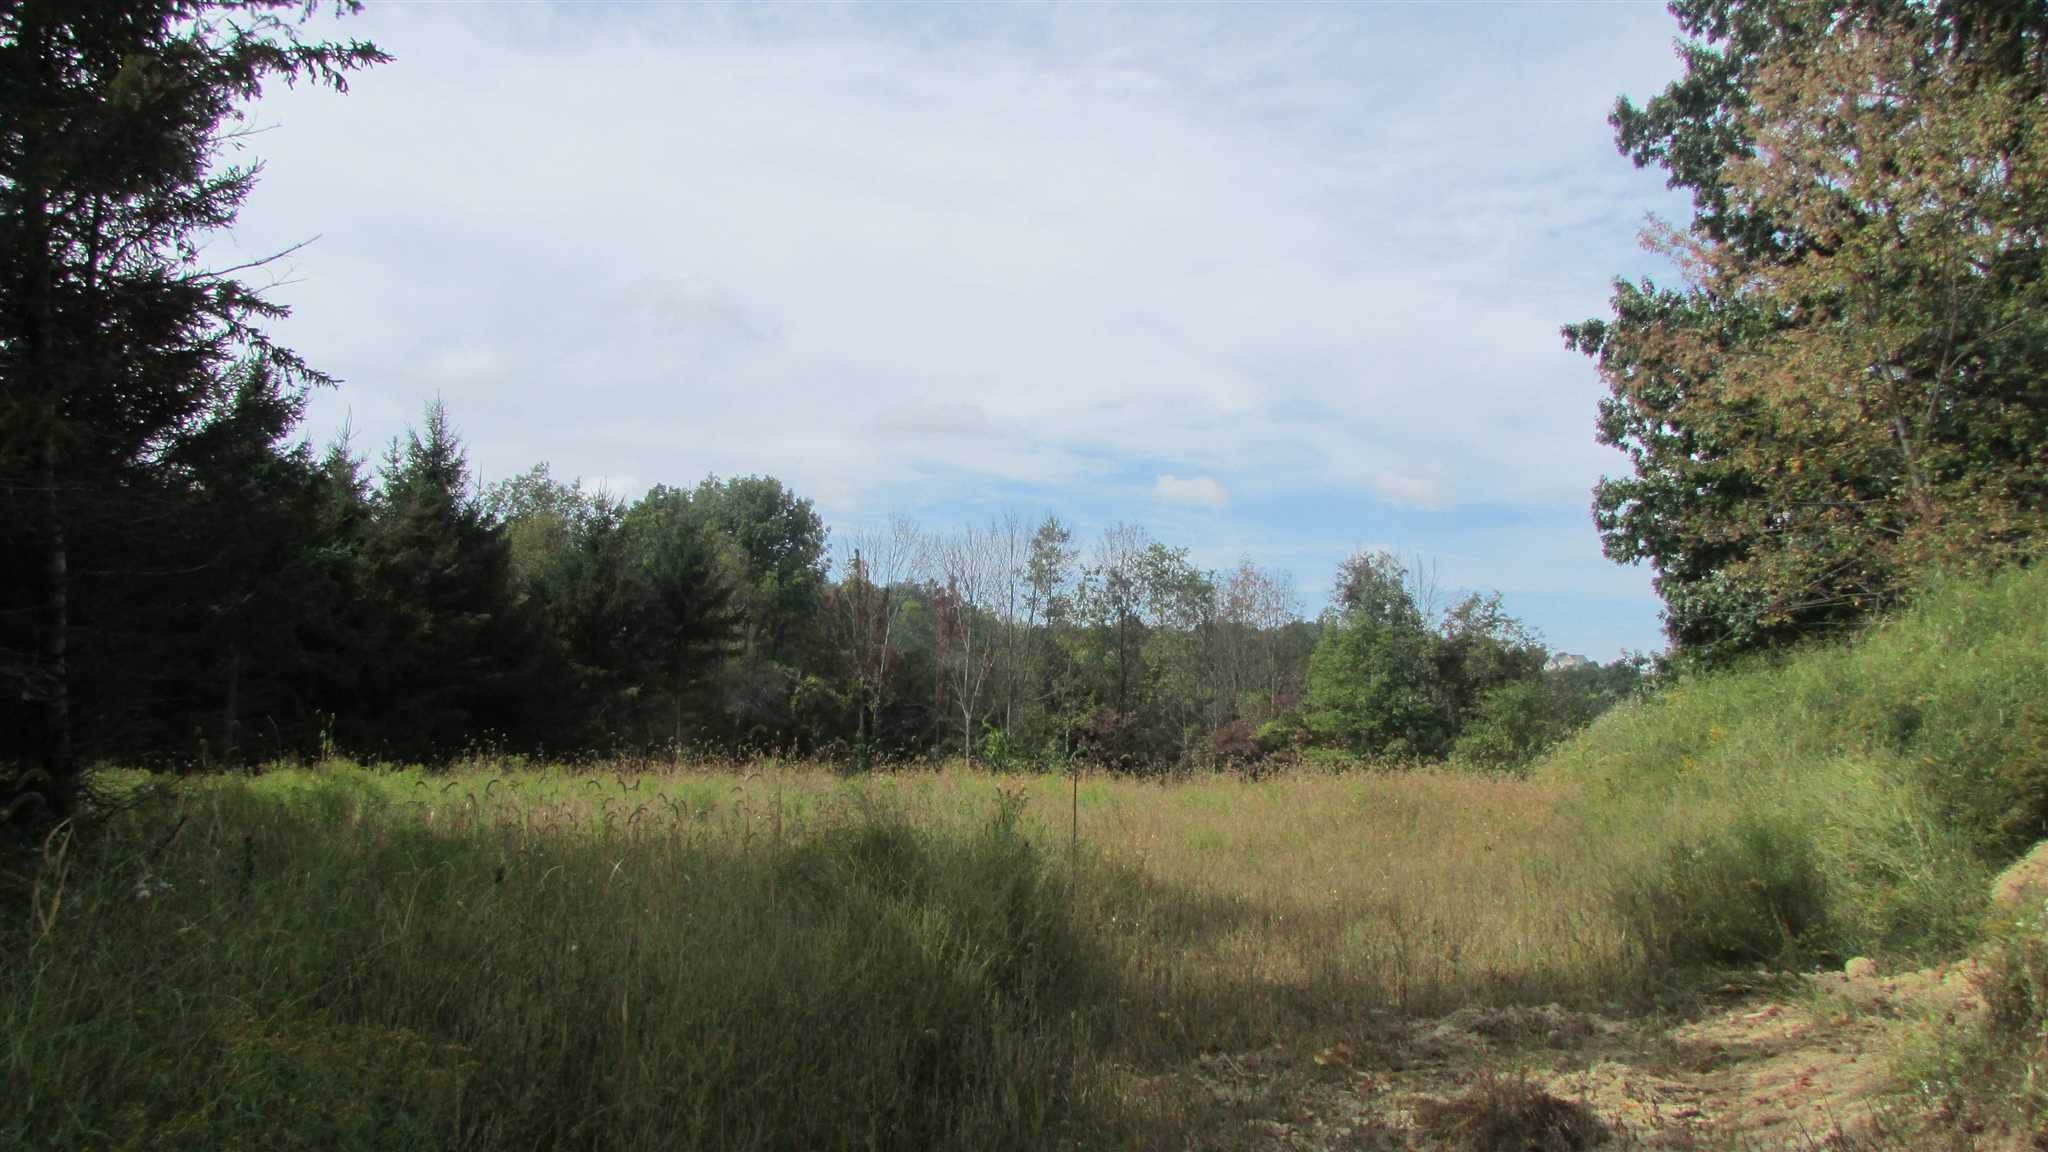 OLD OVERLOOK LOT 3 RD La Grange, NY 12603 - MLS #: 366872